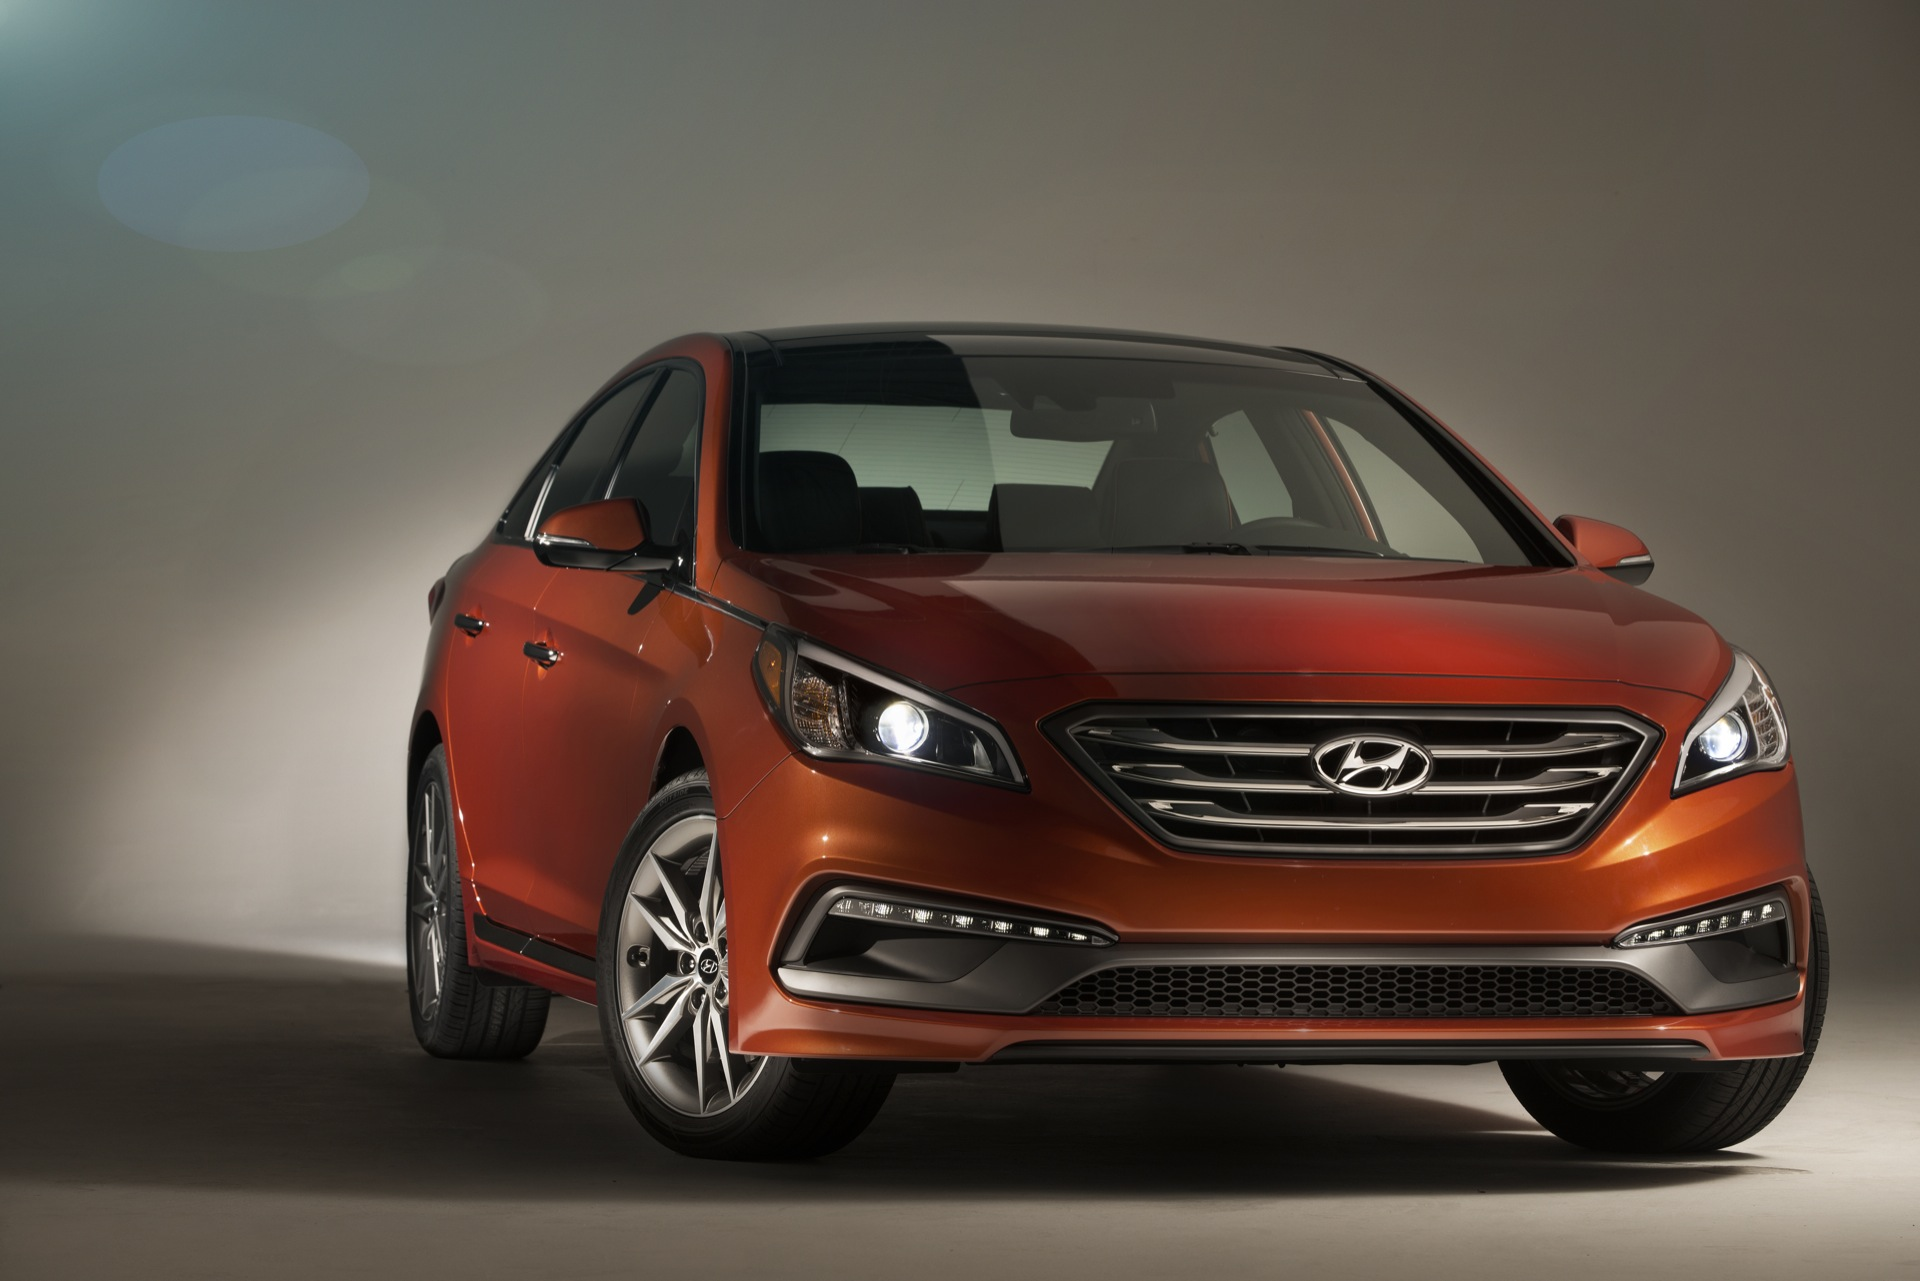 2015 hyundai sonata gets new look lower price. Black Bedroom Furniture Sets. Home Design Ideas